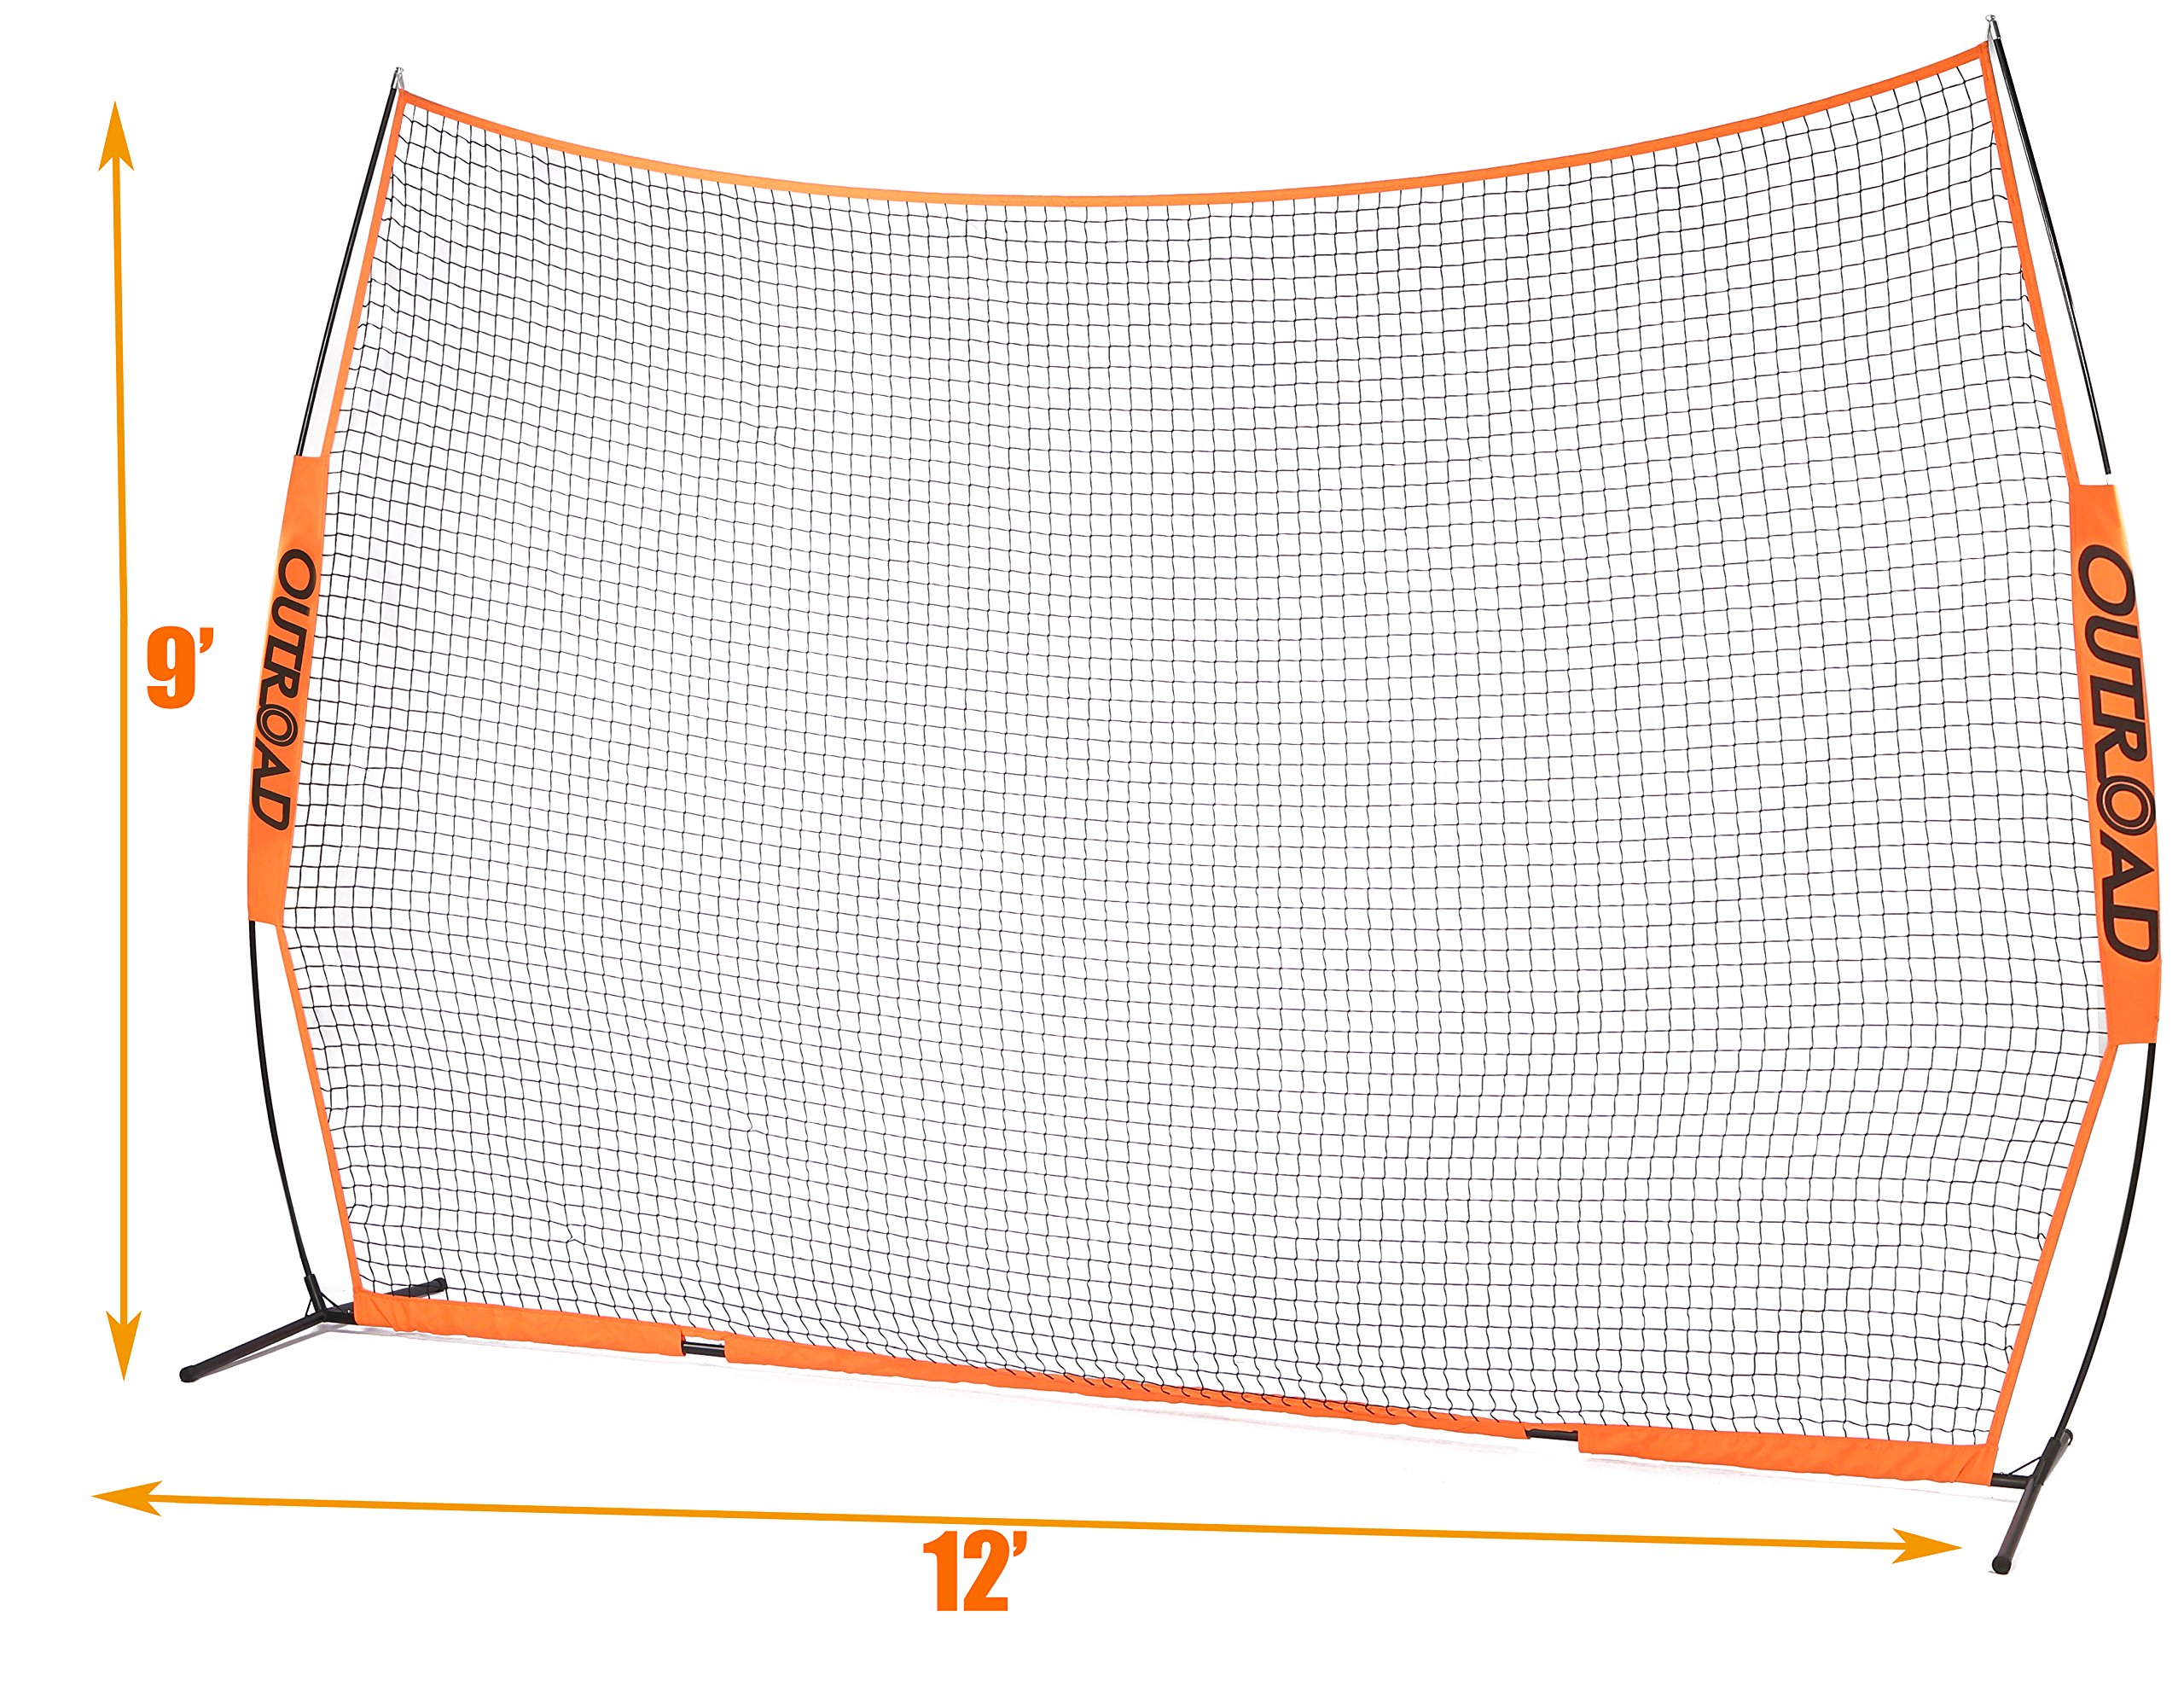 OUTROAD 12x9 FT Barrier Net - Portable Sports Barricade Practice Backstop Net w/ Carry Bag by OUTROAD (Image #6)